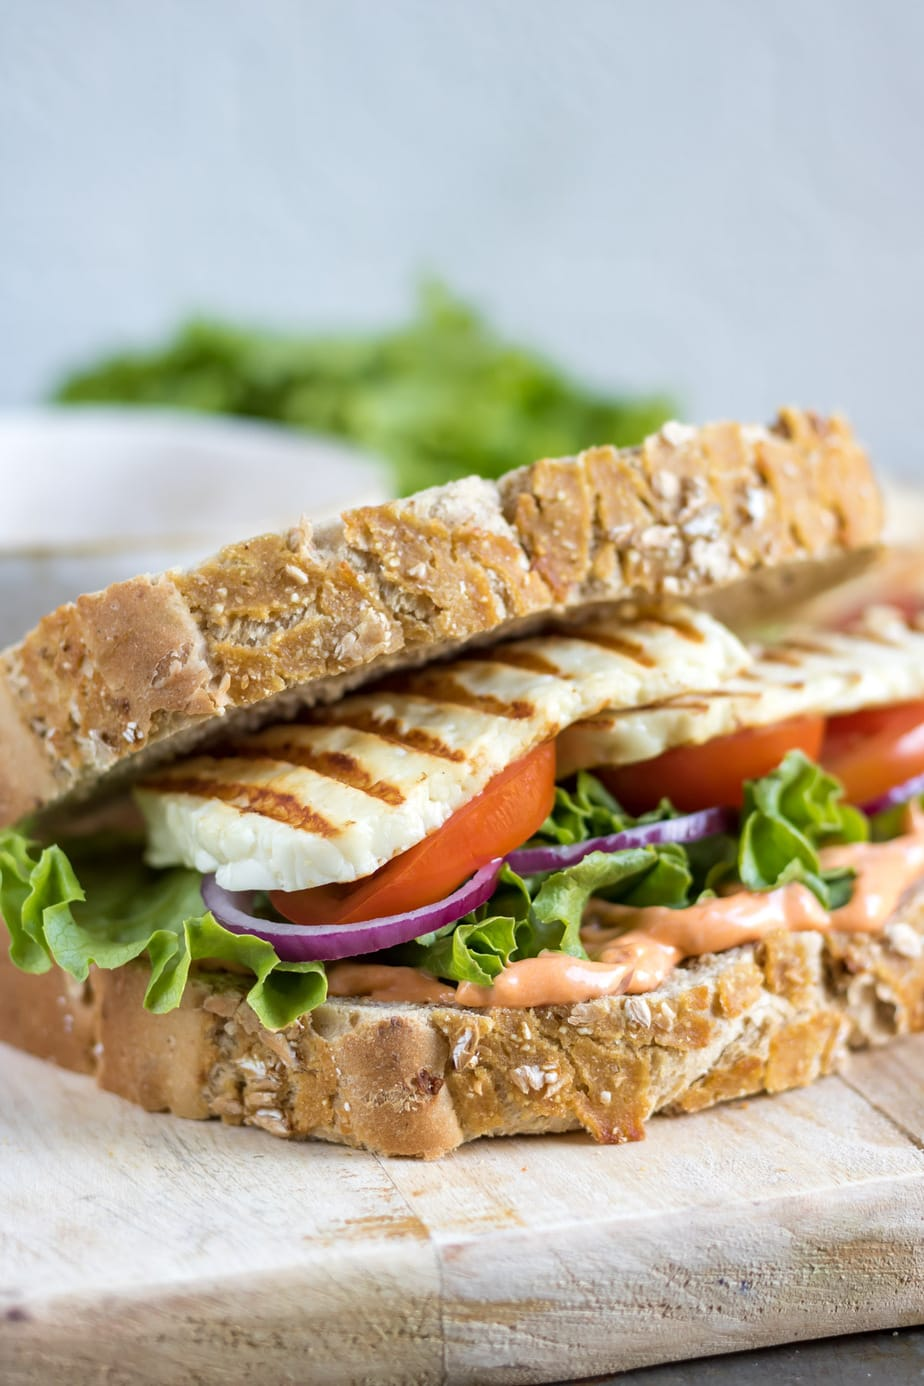 Close up of halloumi in a sandwich.